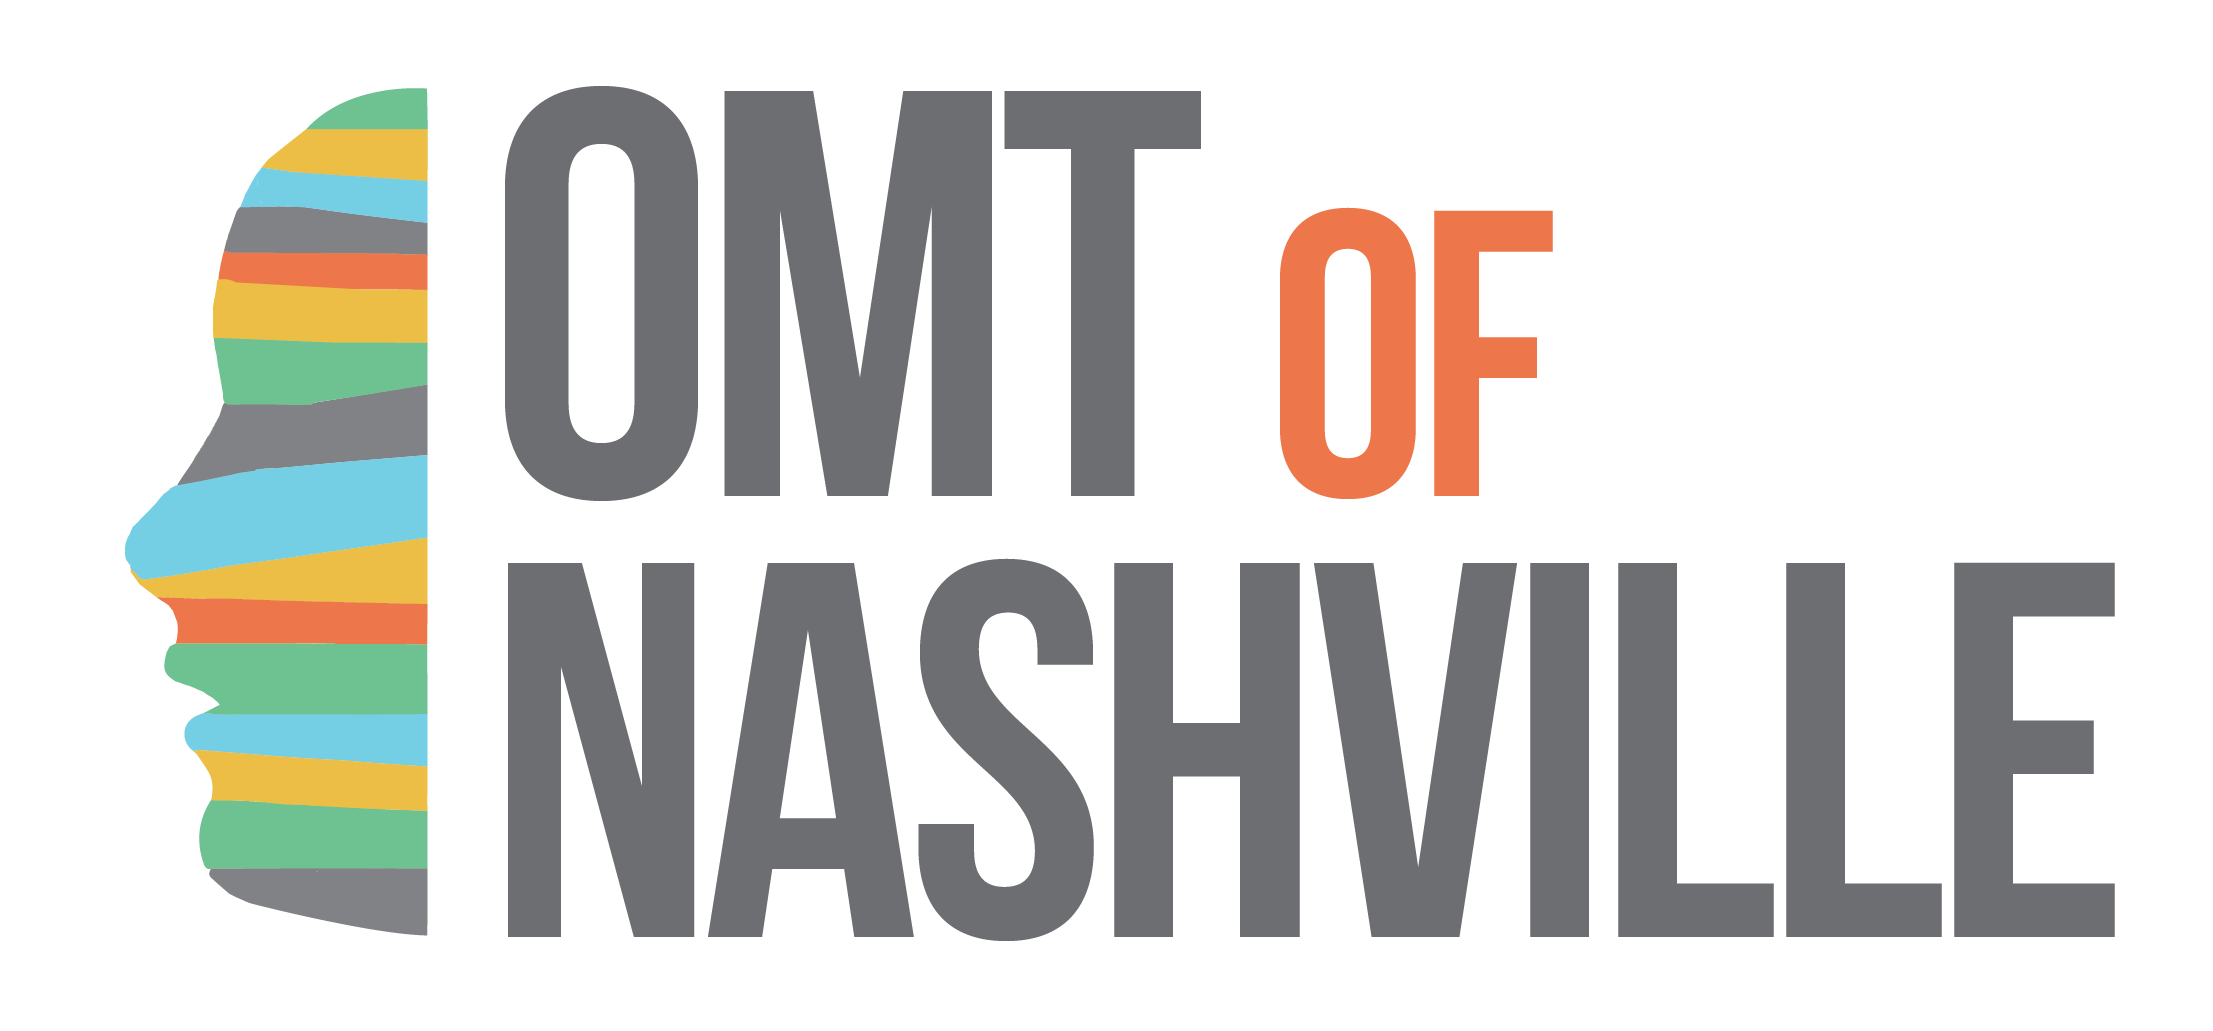 omt of nashville logo